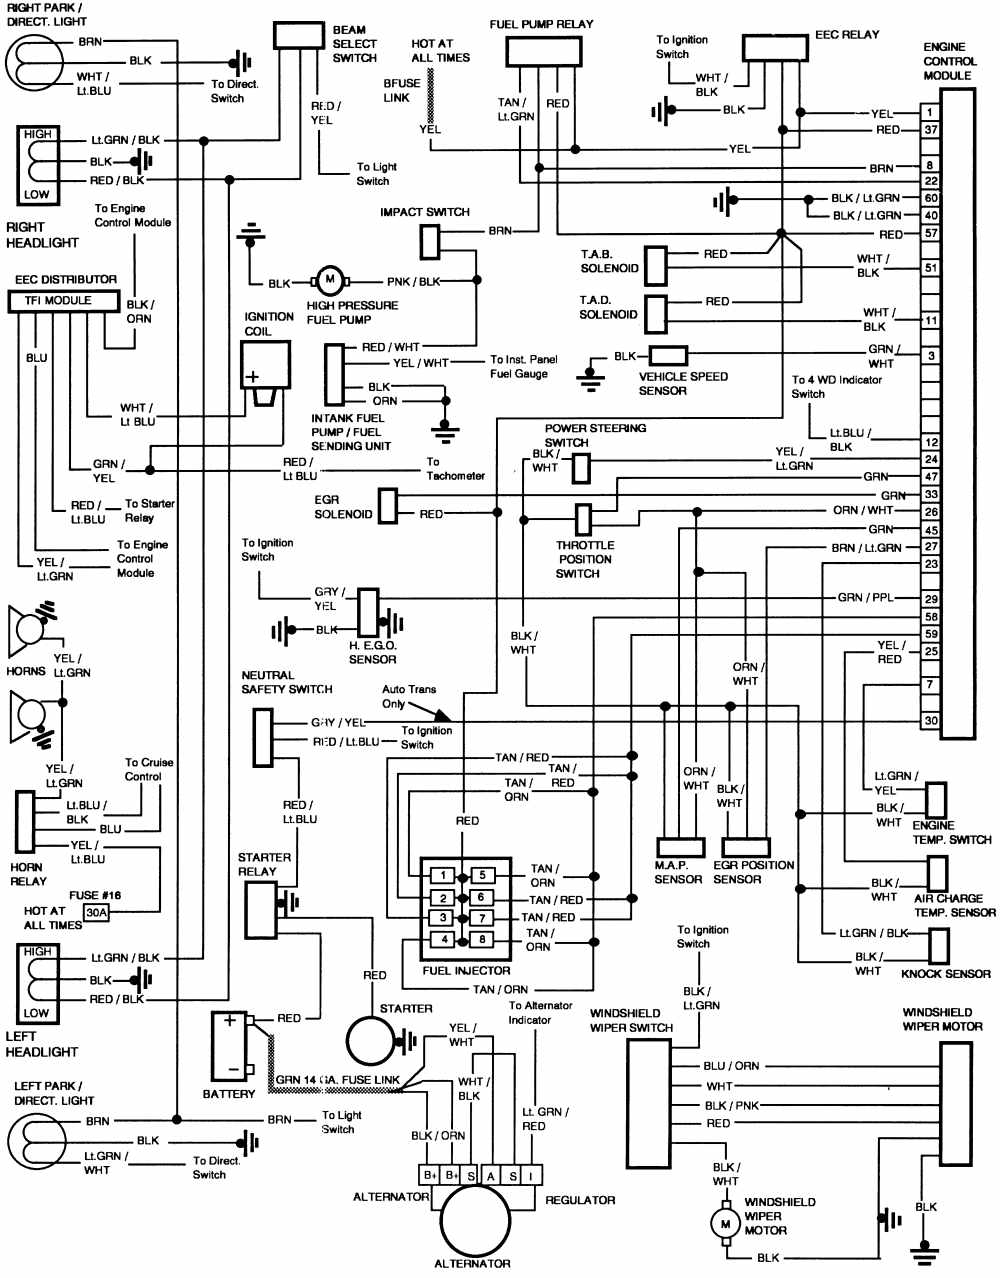 ford e 150 engine diagram 2017 ototrends net 1998 ford engine diagram ford e 150 engine diagram ford f 250 1986 engine control module wiring diagram